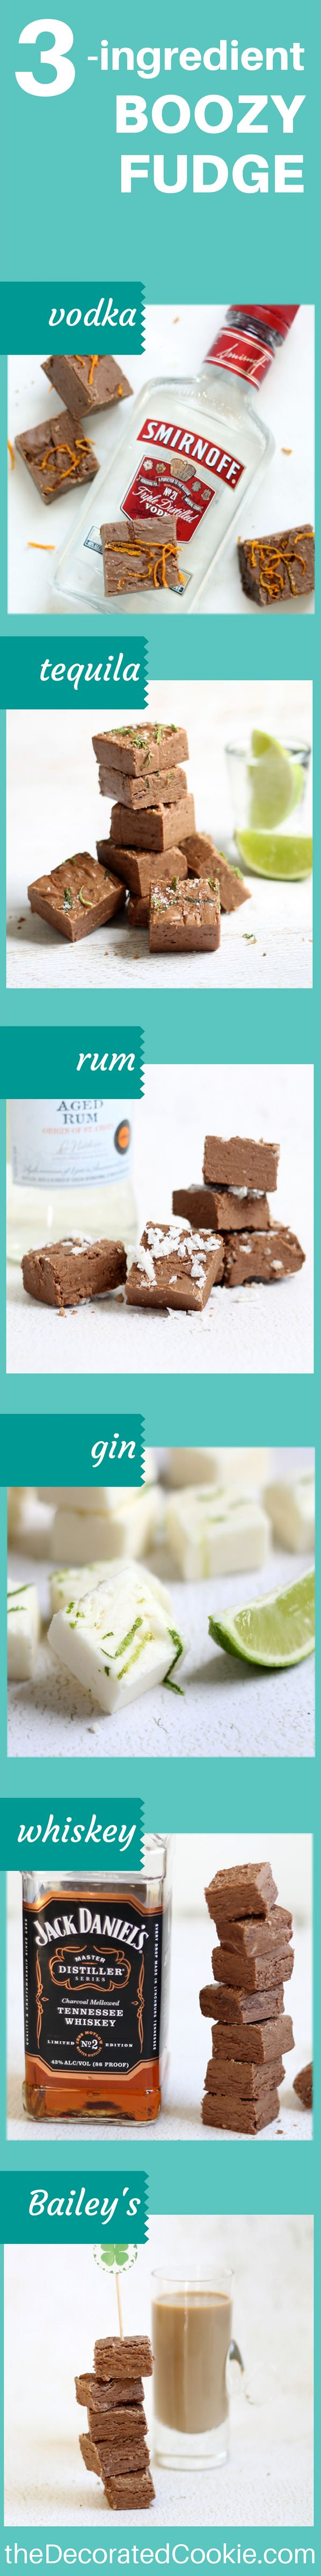 3-ingredient boozy FUDGE! Use any liquor you like. Great homemade food gift.